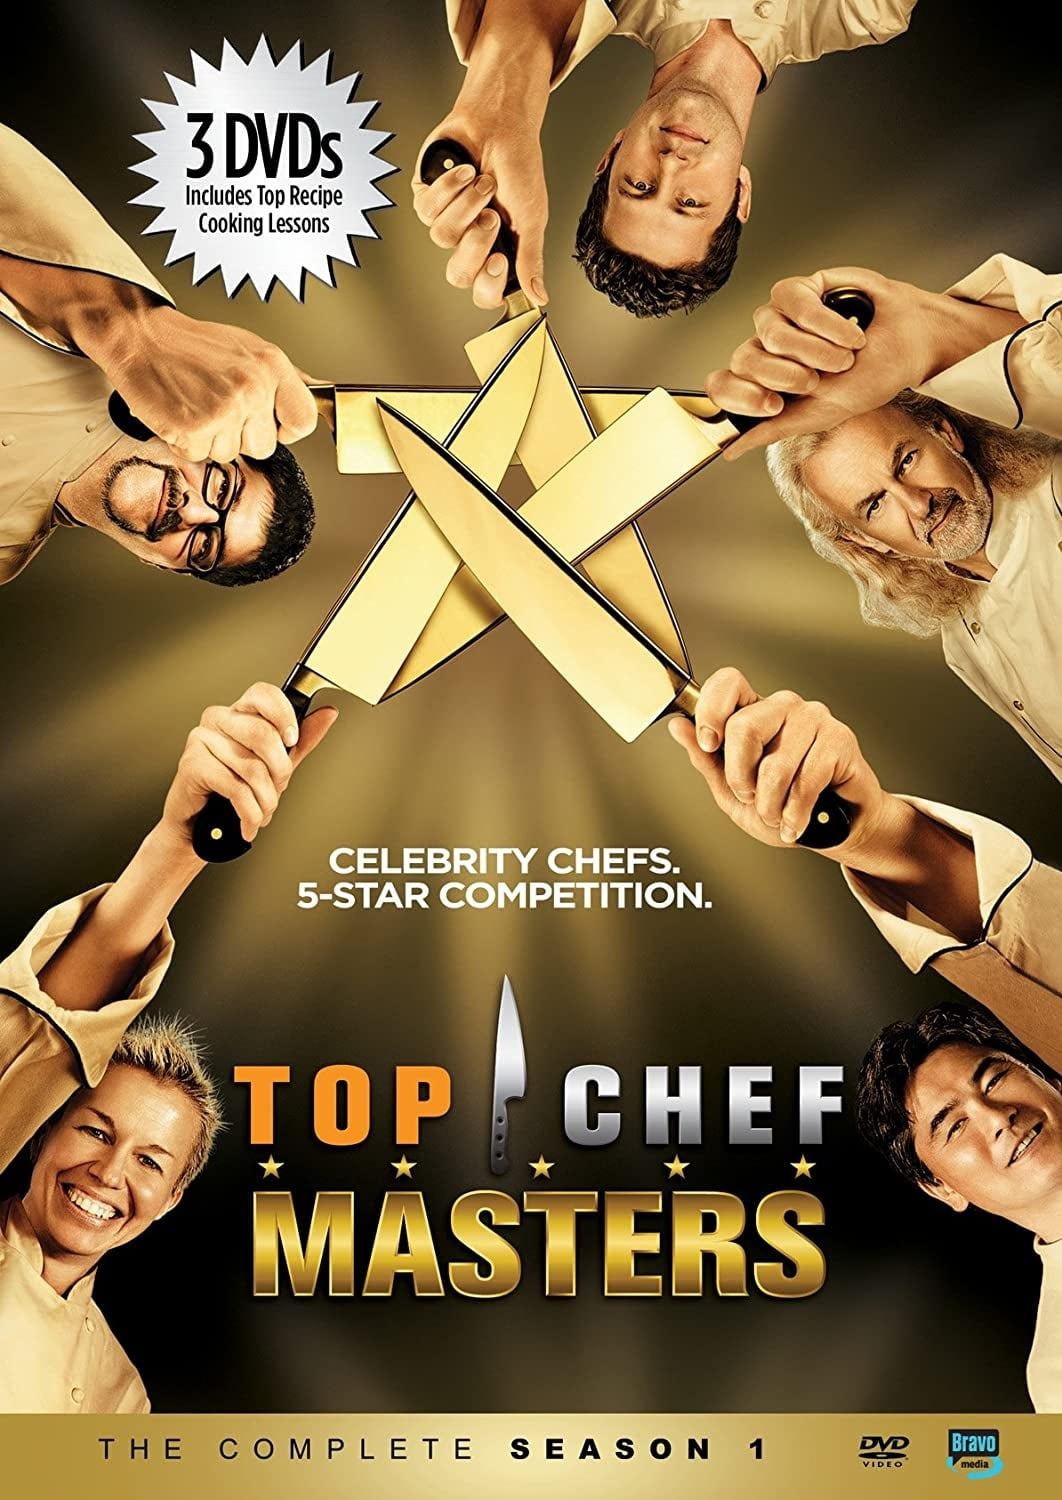 Top Chef Masters (2009)